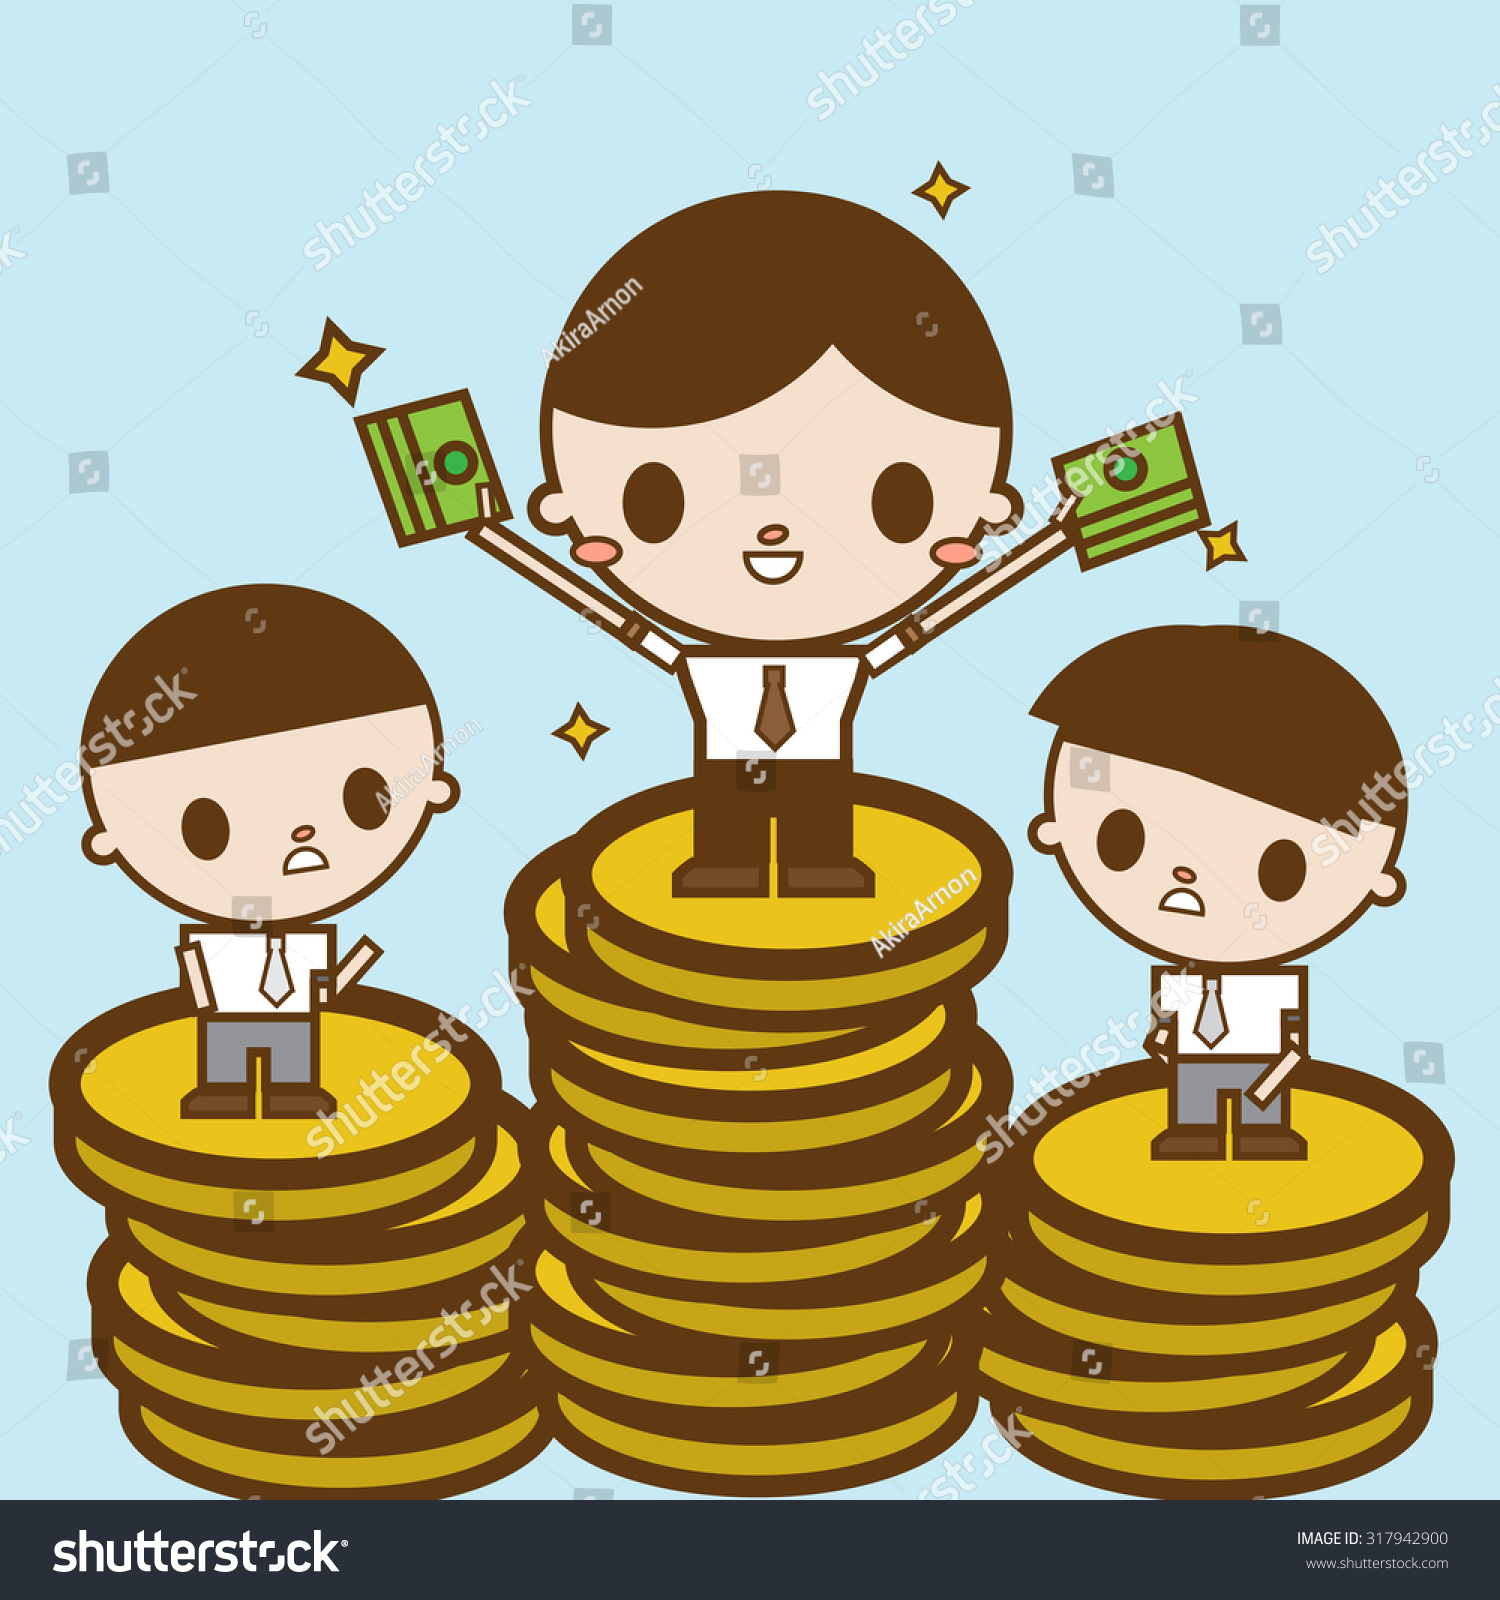 Character Designer Salary : Salary variation business concept cartoon illustration